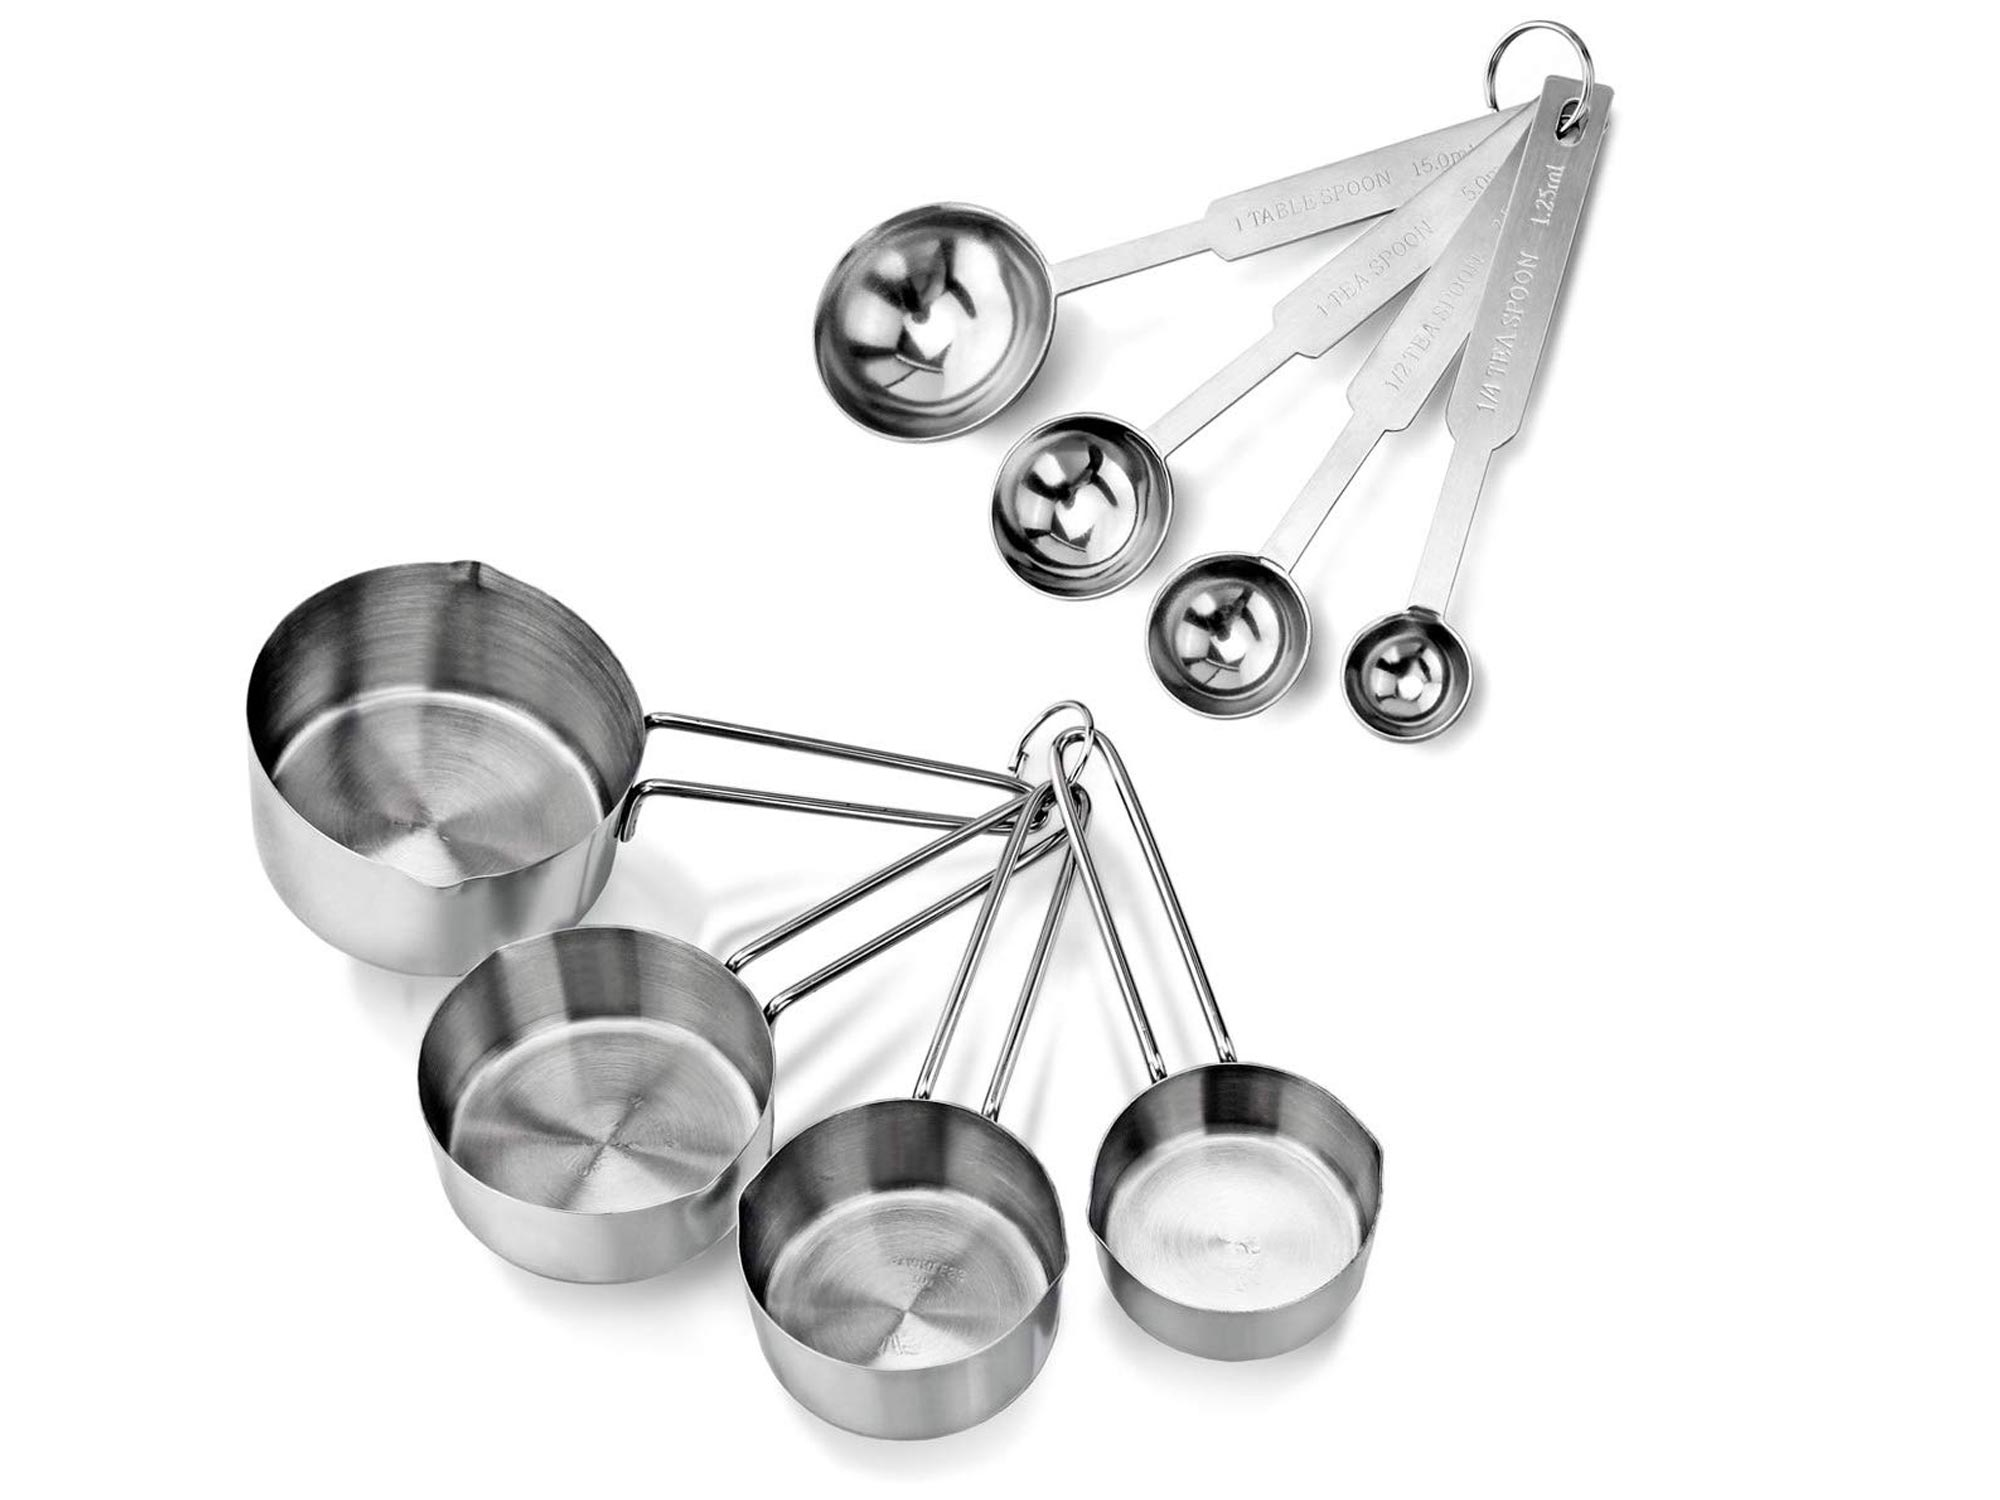 New Star Foodservice Stainless Steel Measuring Spoons